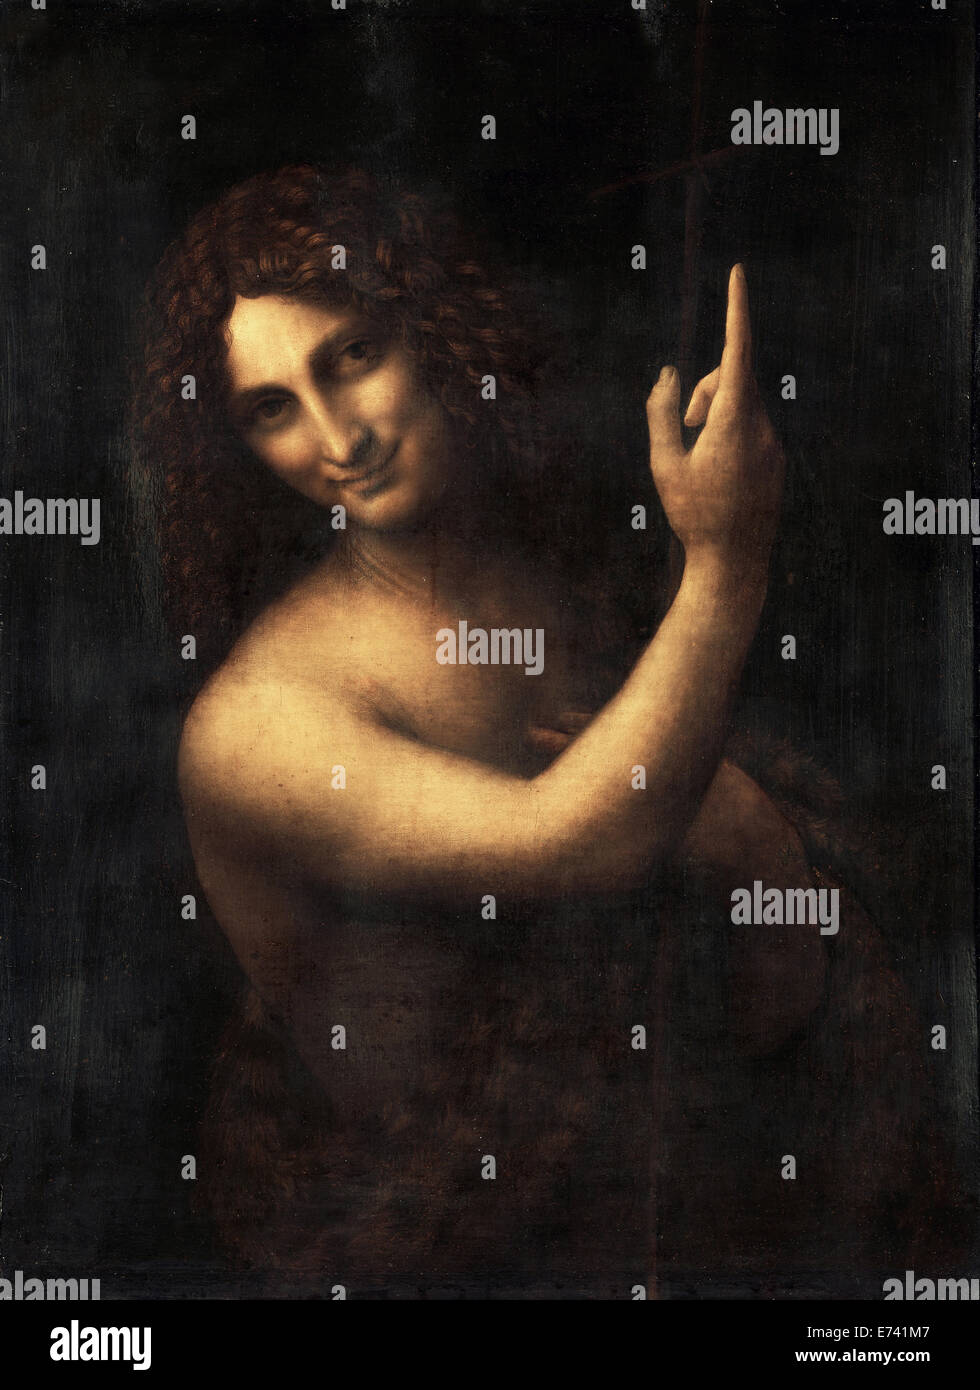 John the Baptist - by Leonardo Da Vinci, 1514 - Stock Image